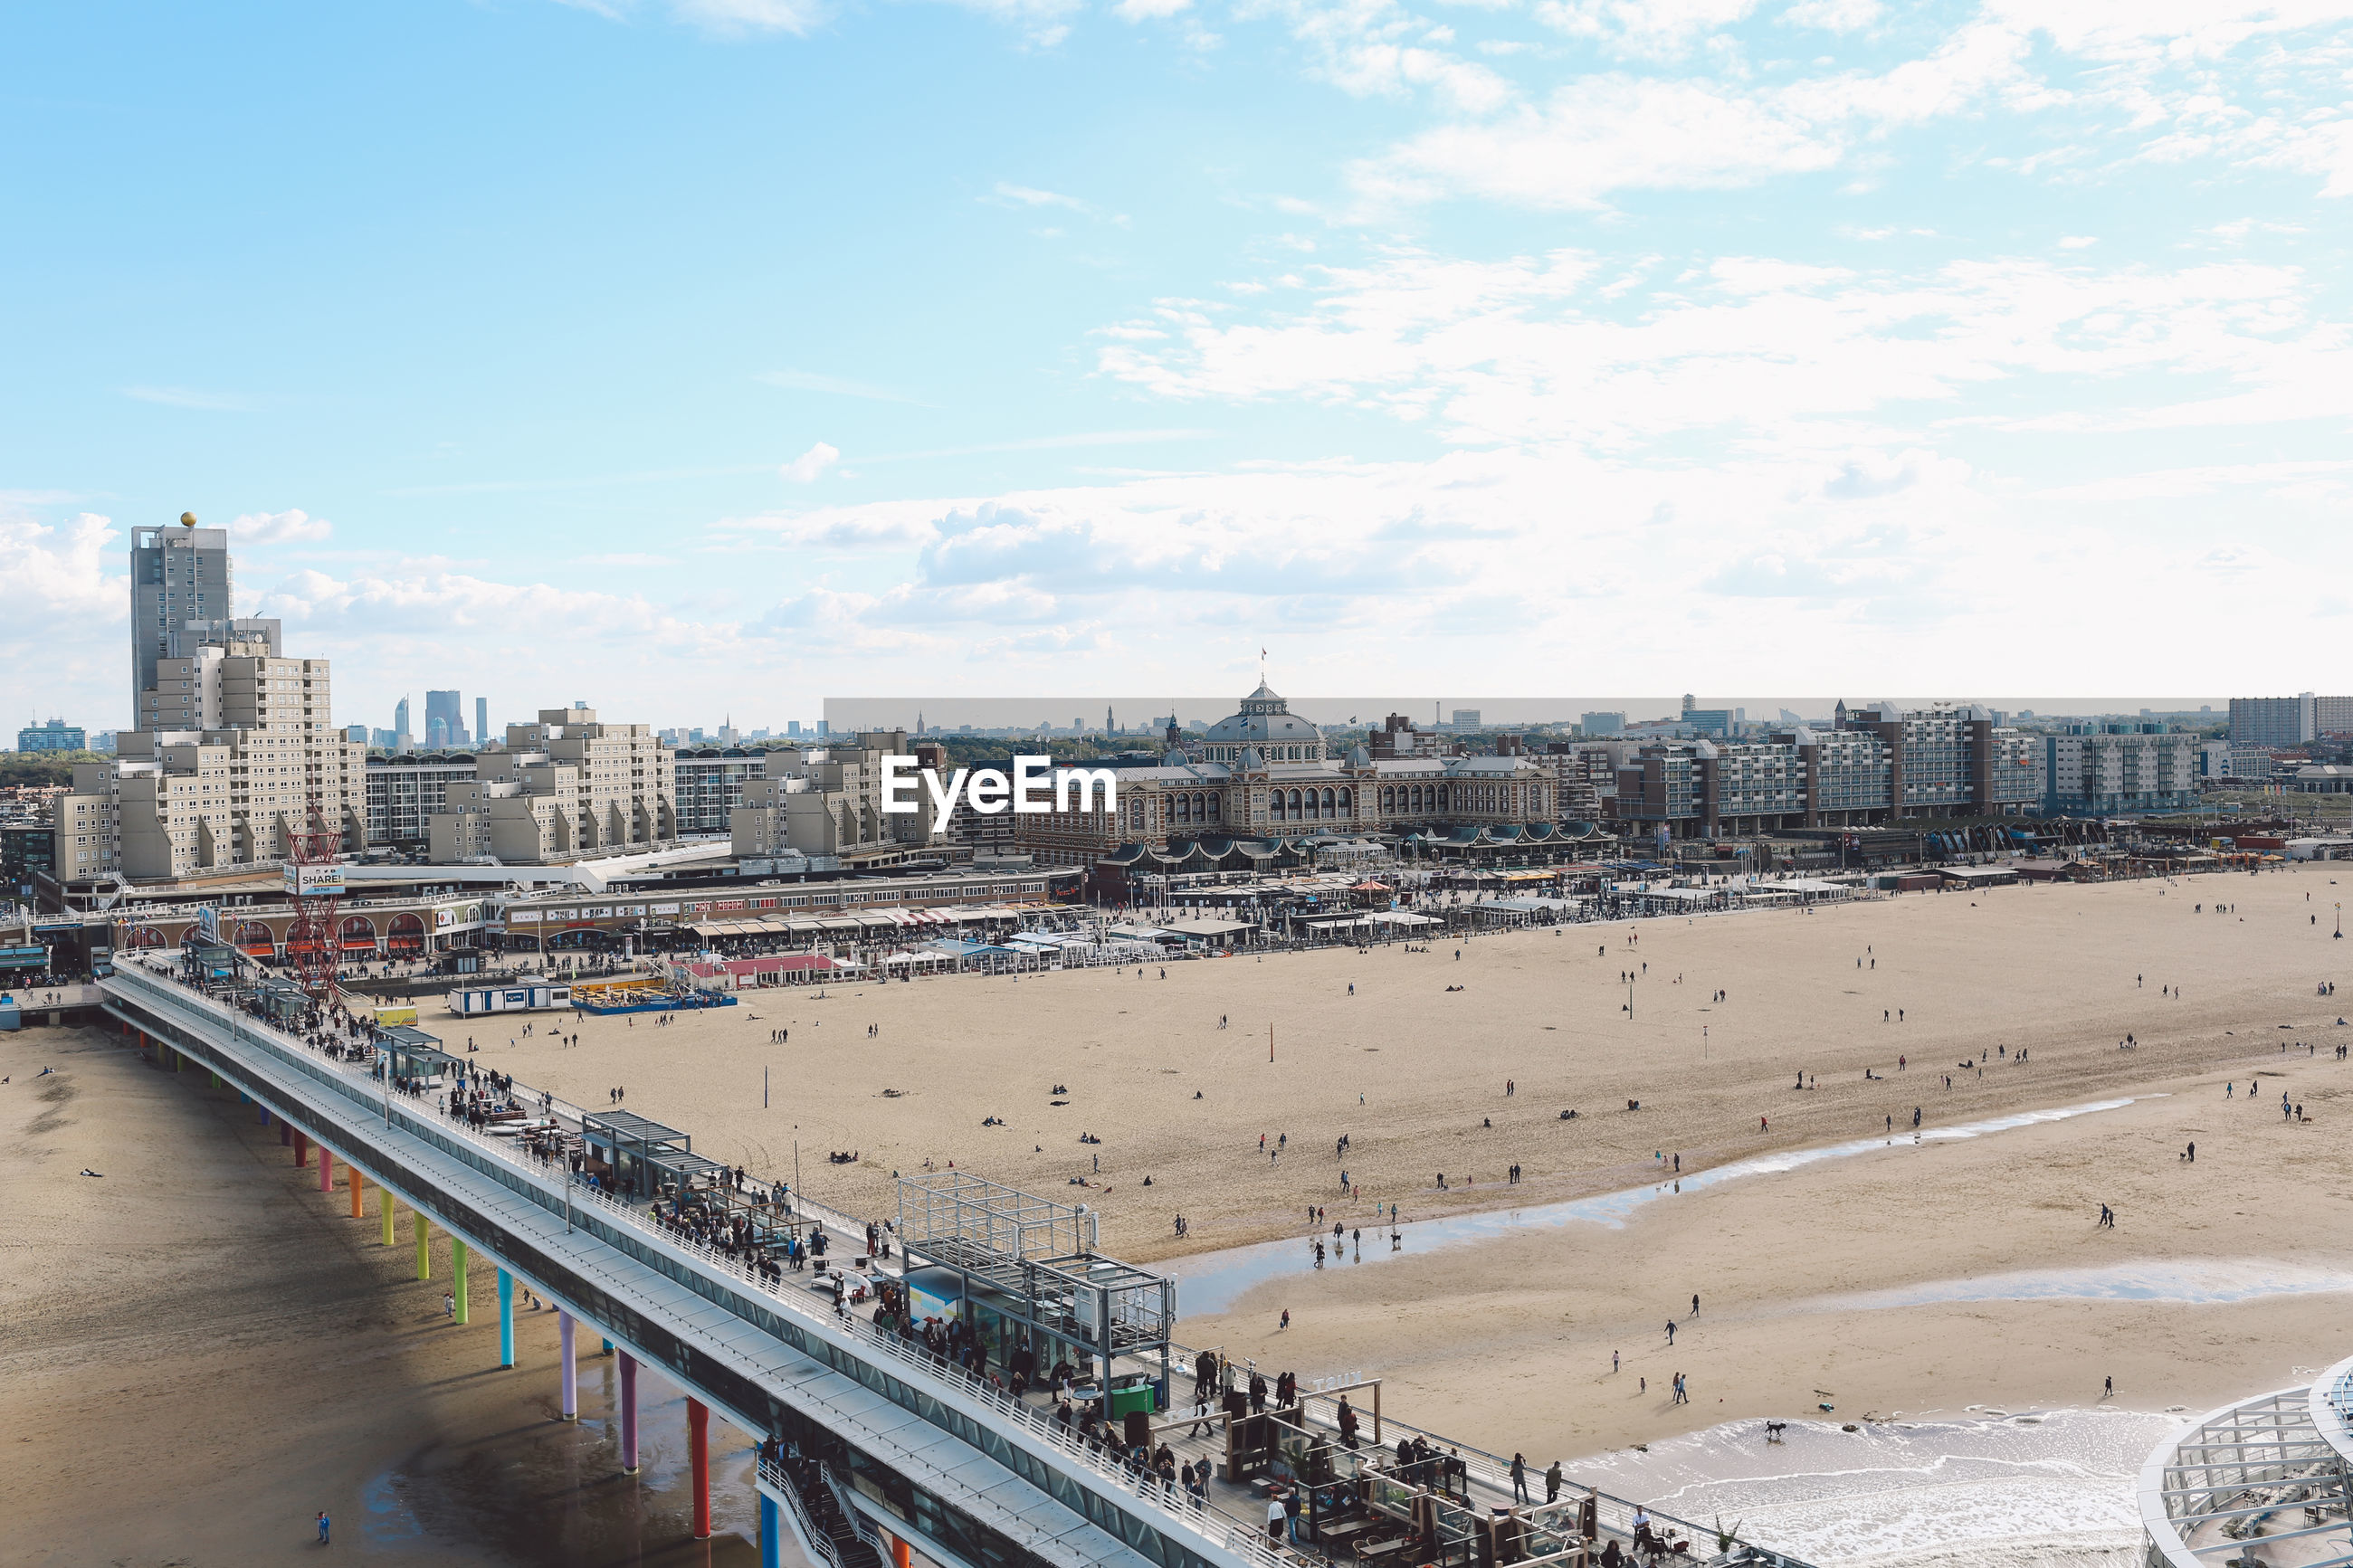 High angle view of scheveningen pier at beach in city